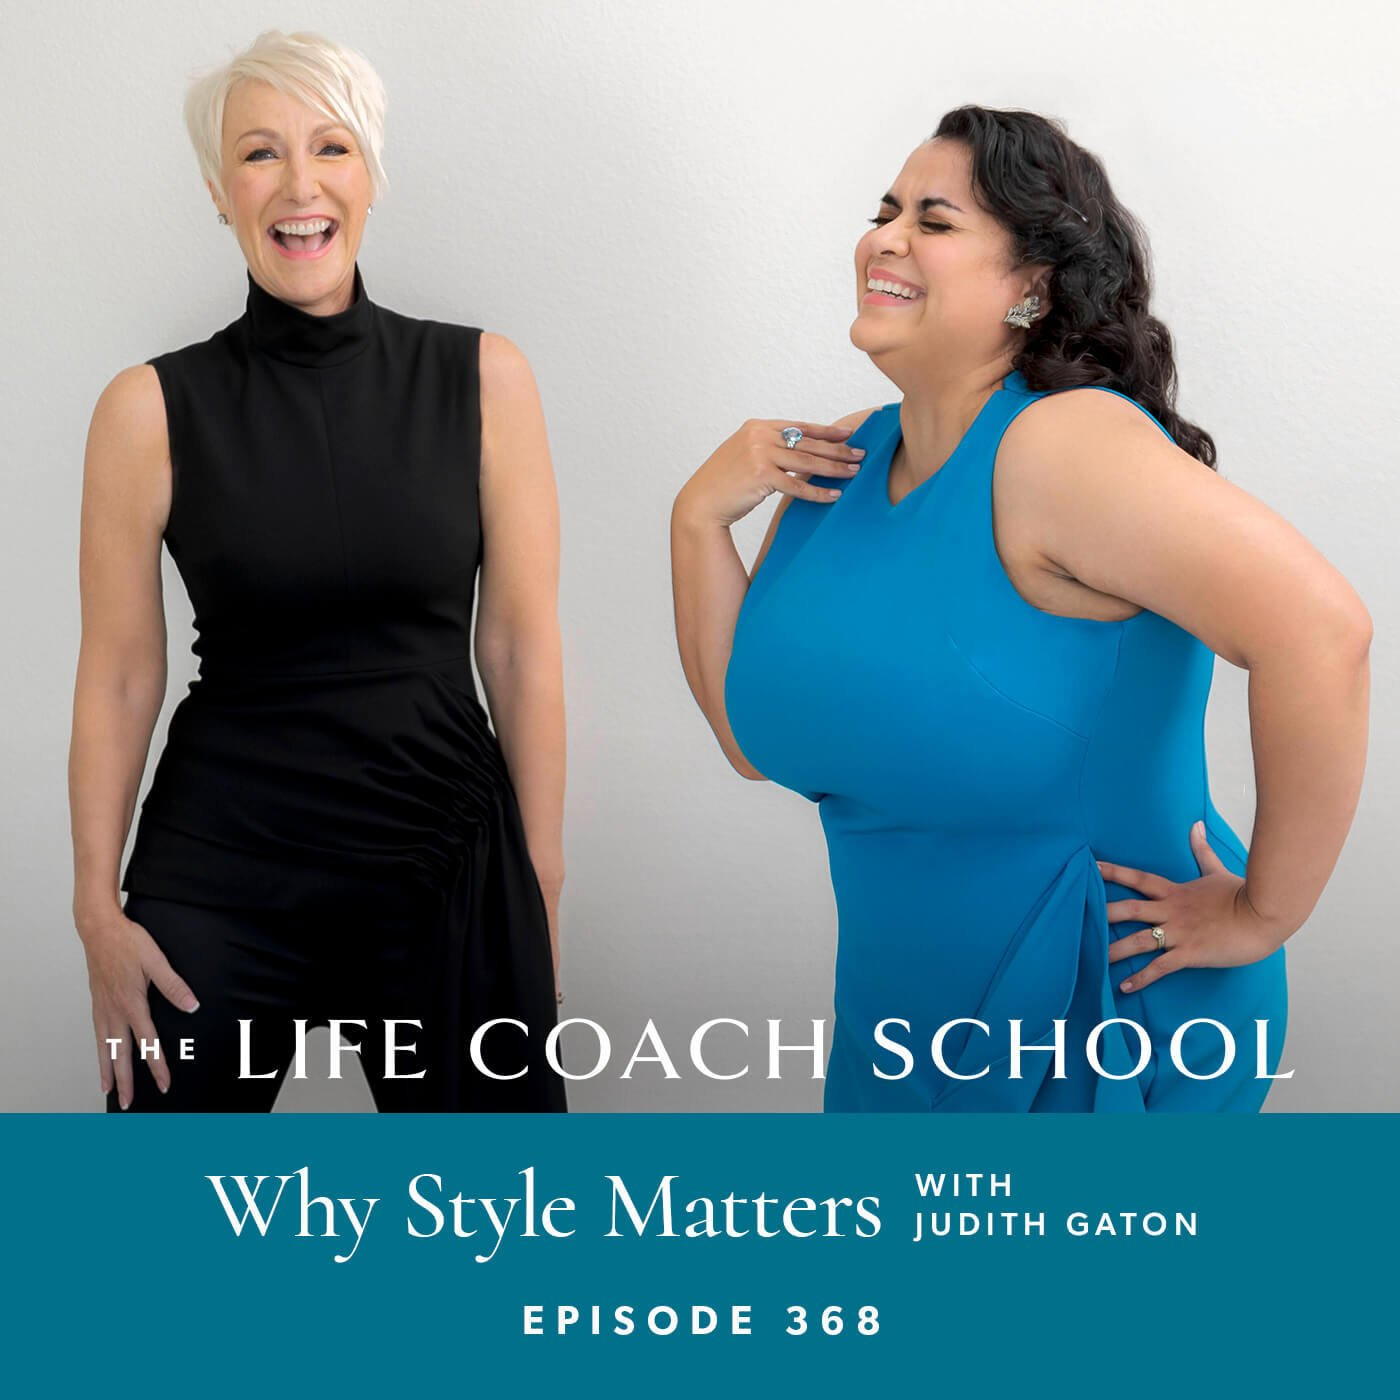 The Life Coach School Podcast with Brooke Castillo | Why Style Matters with Judith Gaton